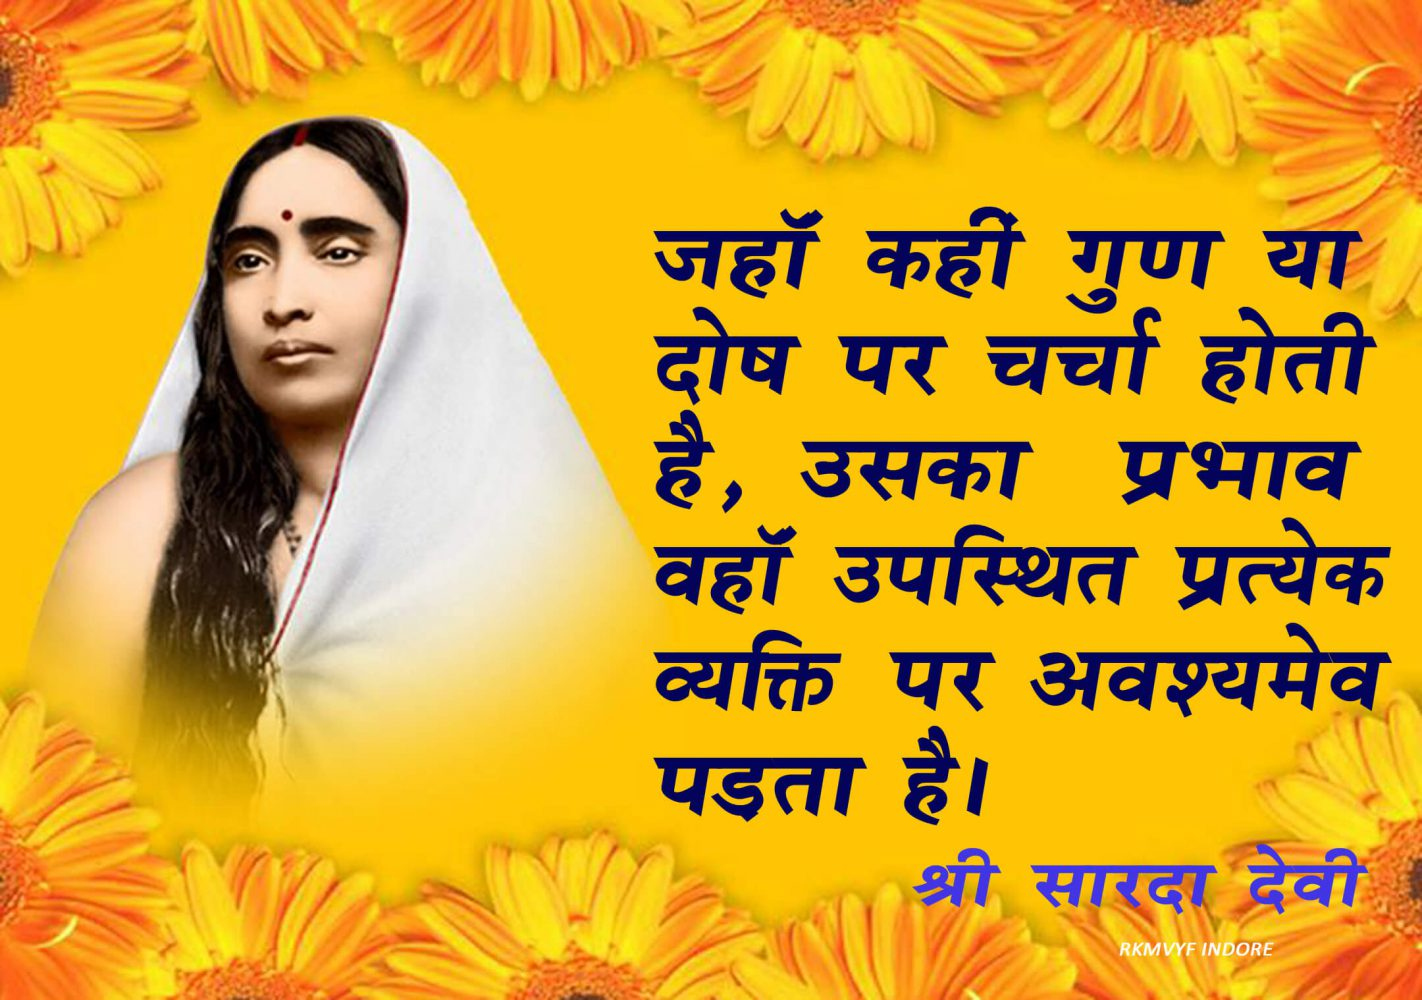 Inspirational Quote of Sri Sarada Maa